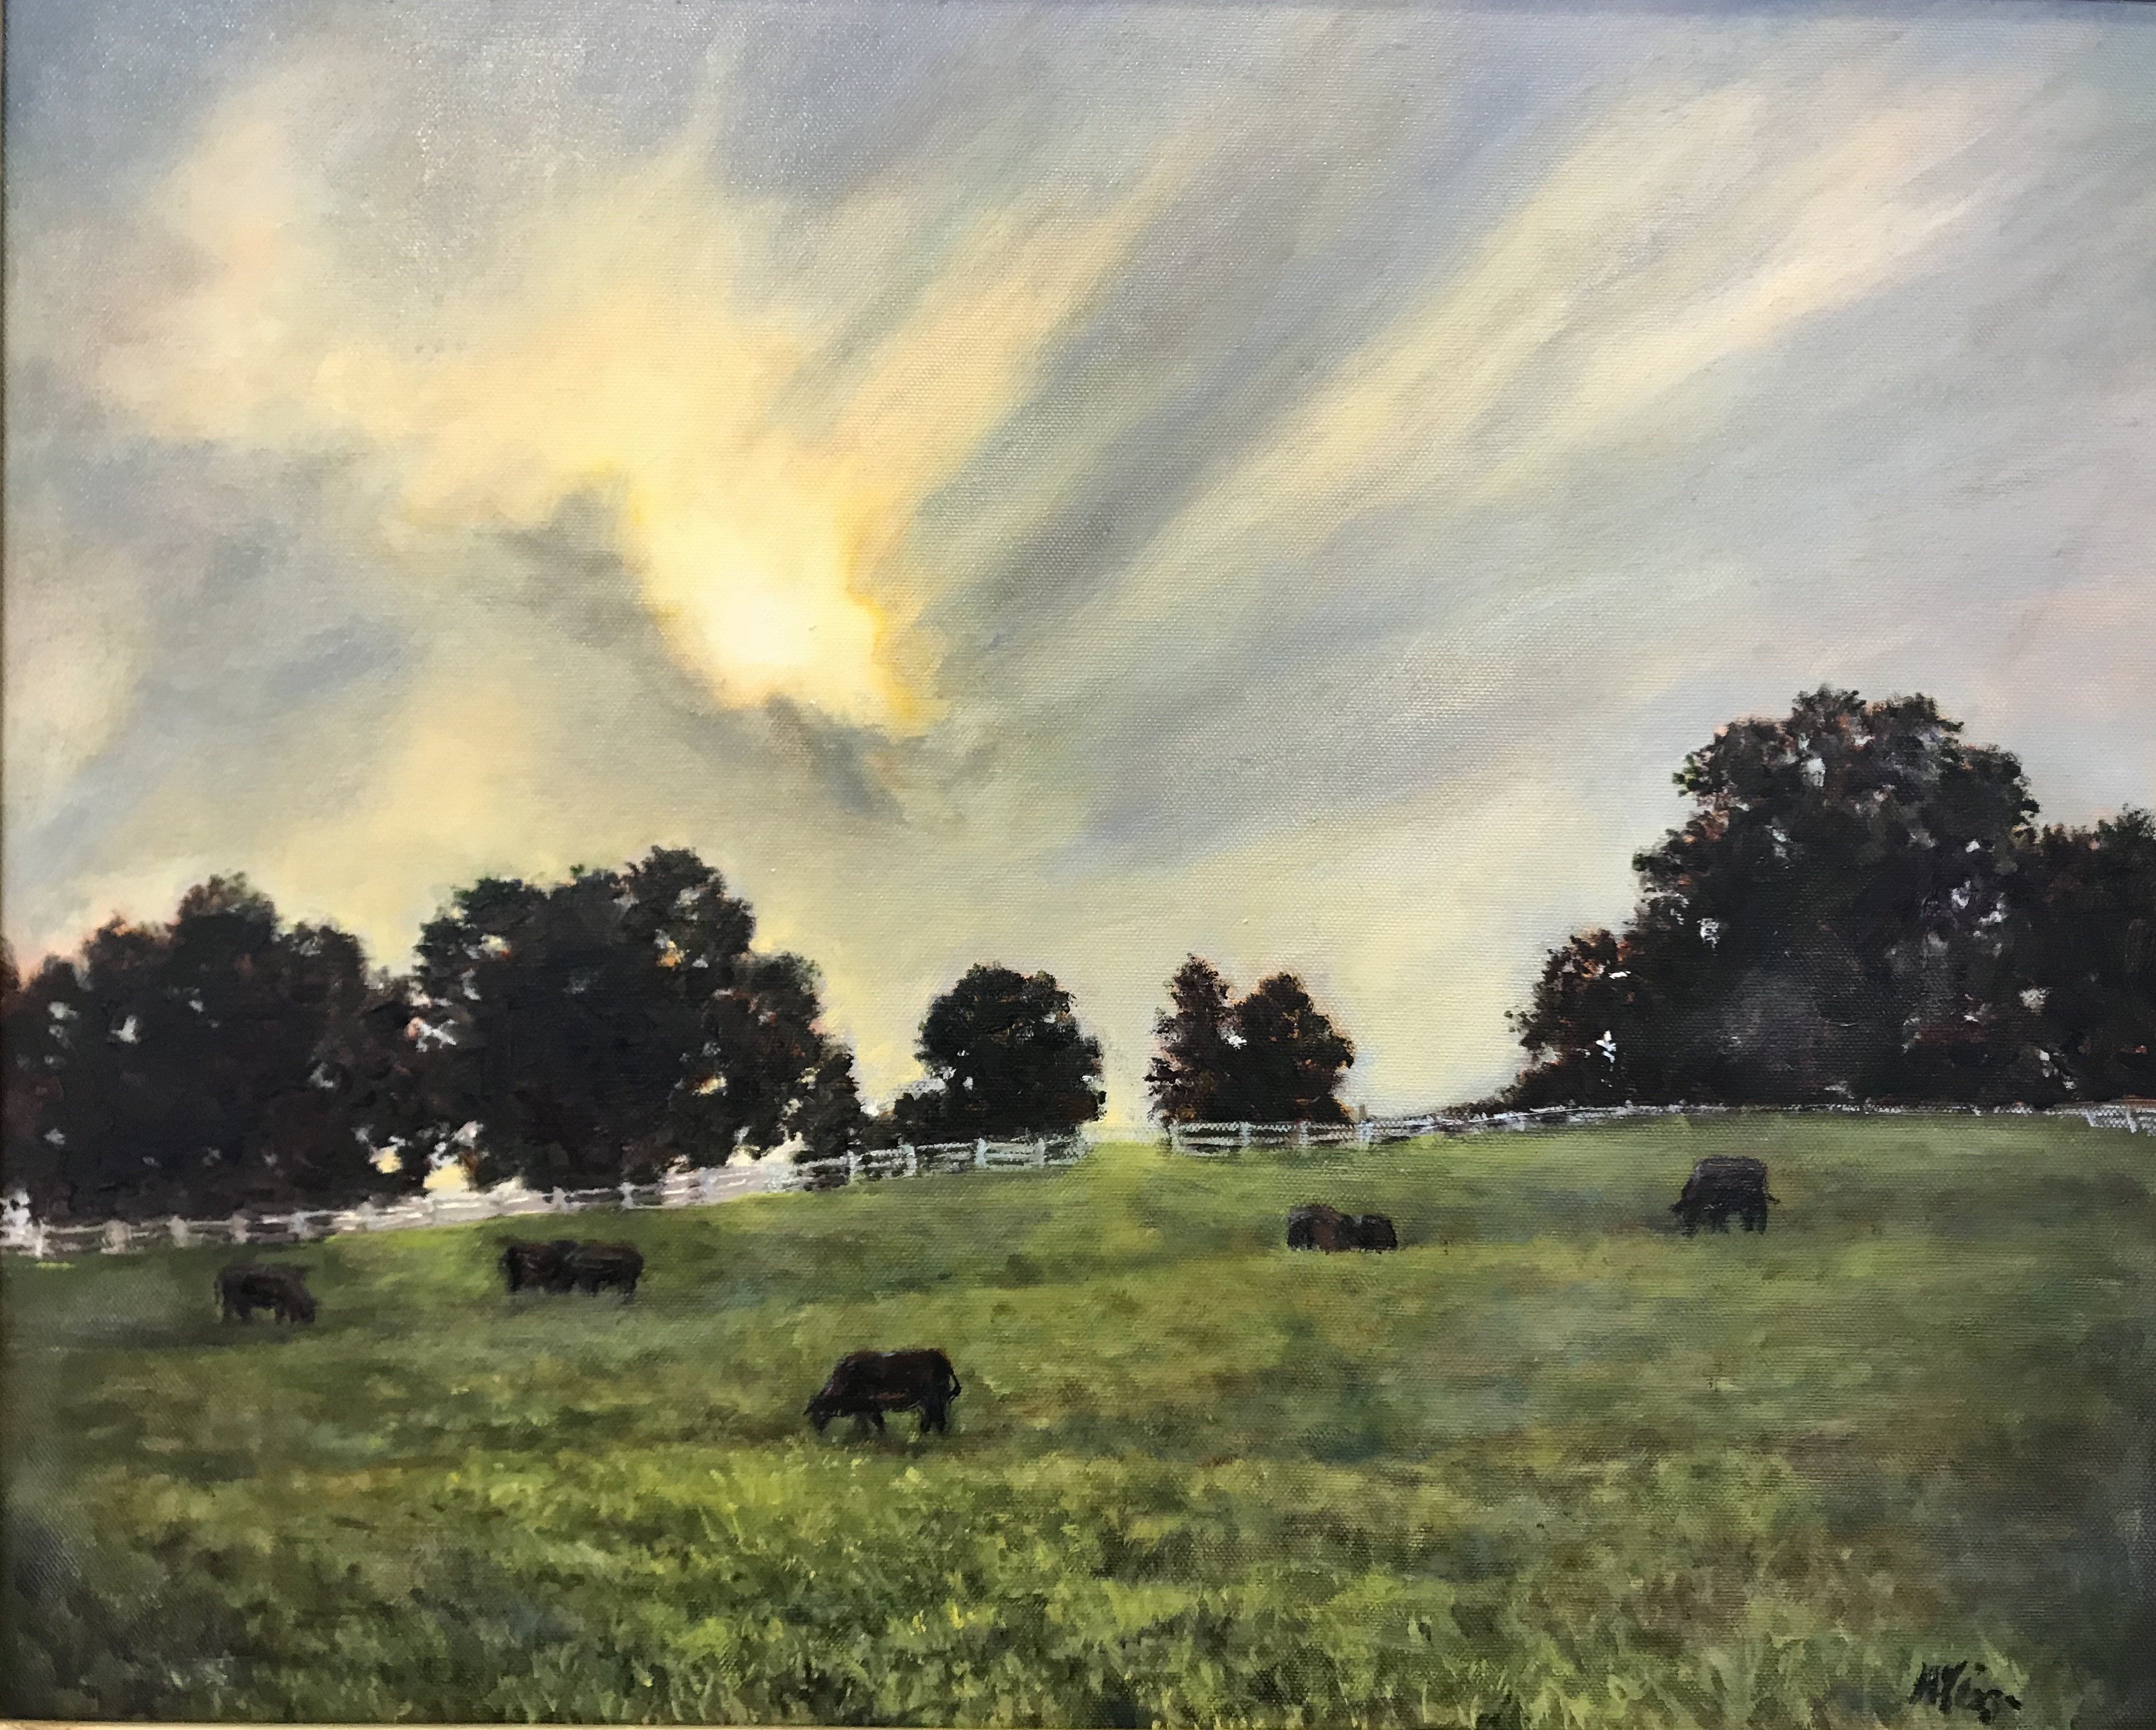 Cows,pastoral,sunset,farmland,sunlight,field,grazingcows